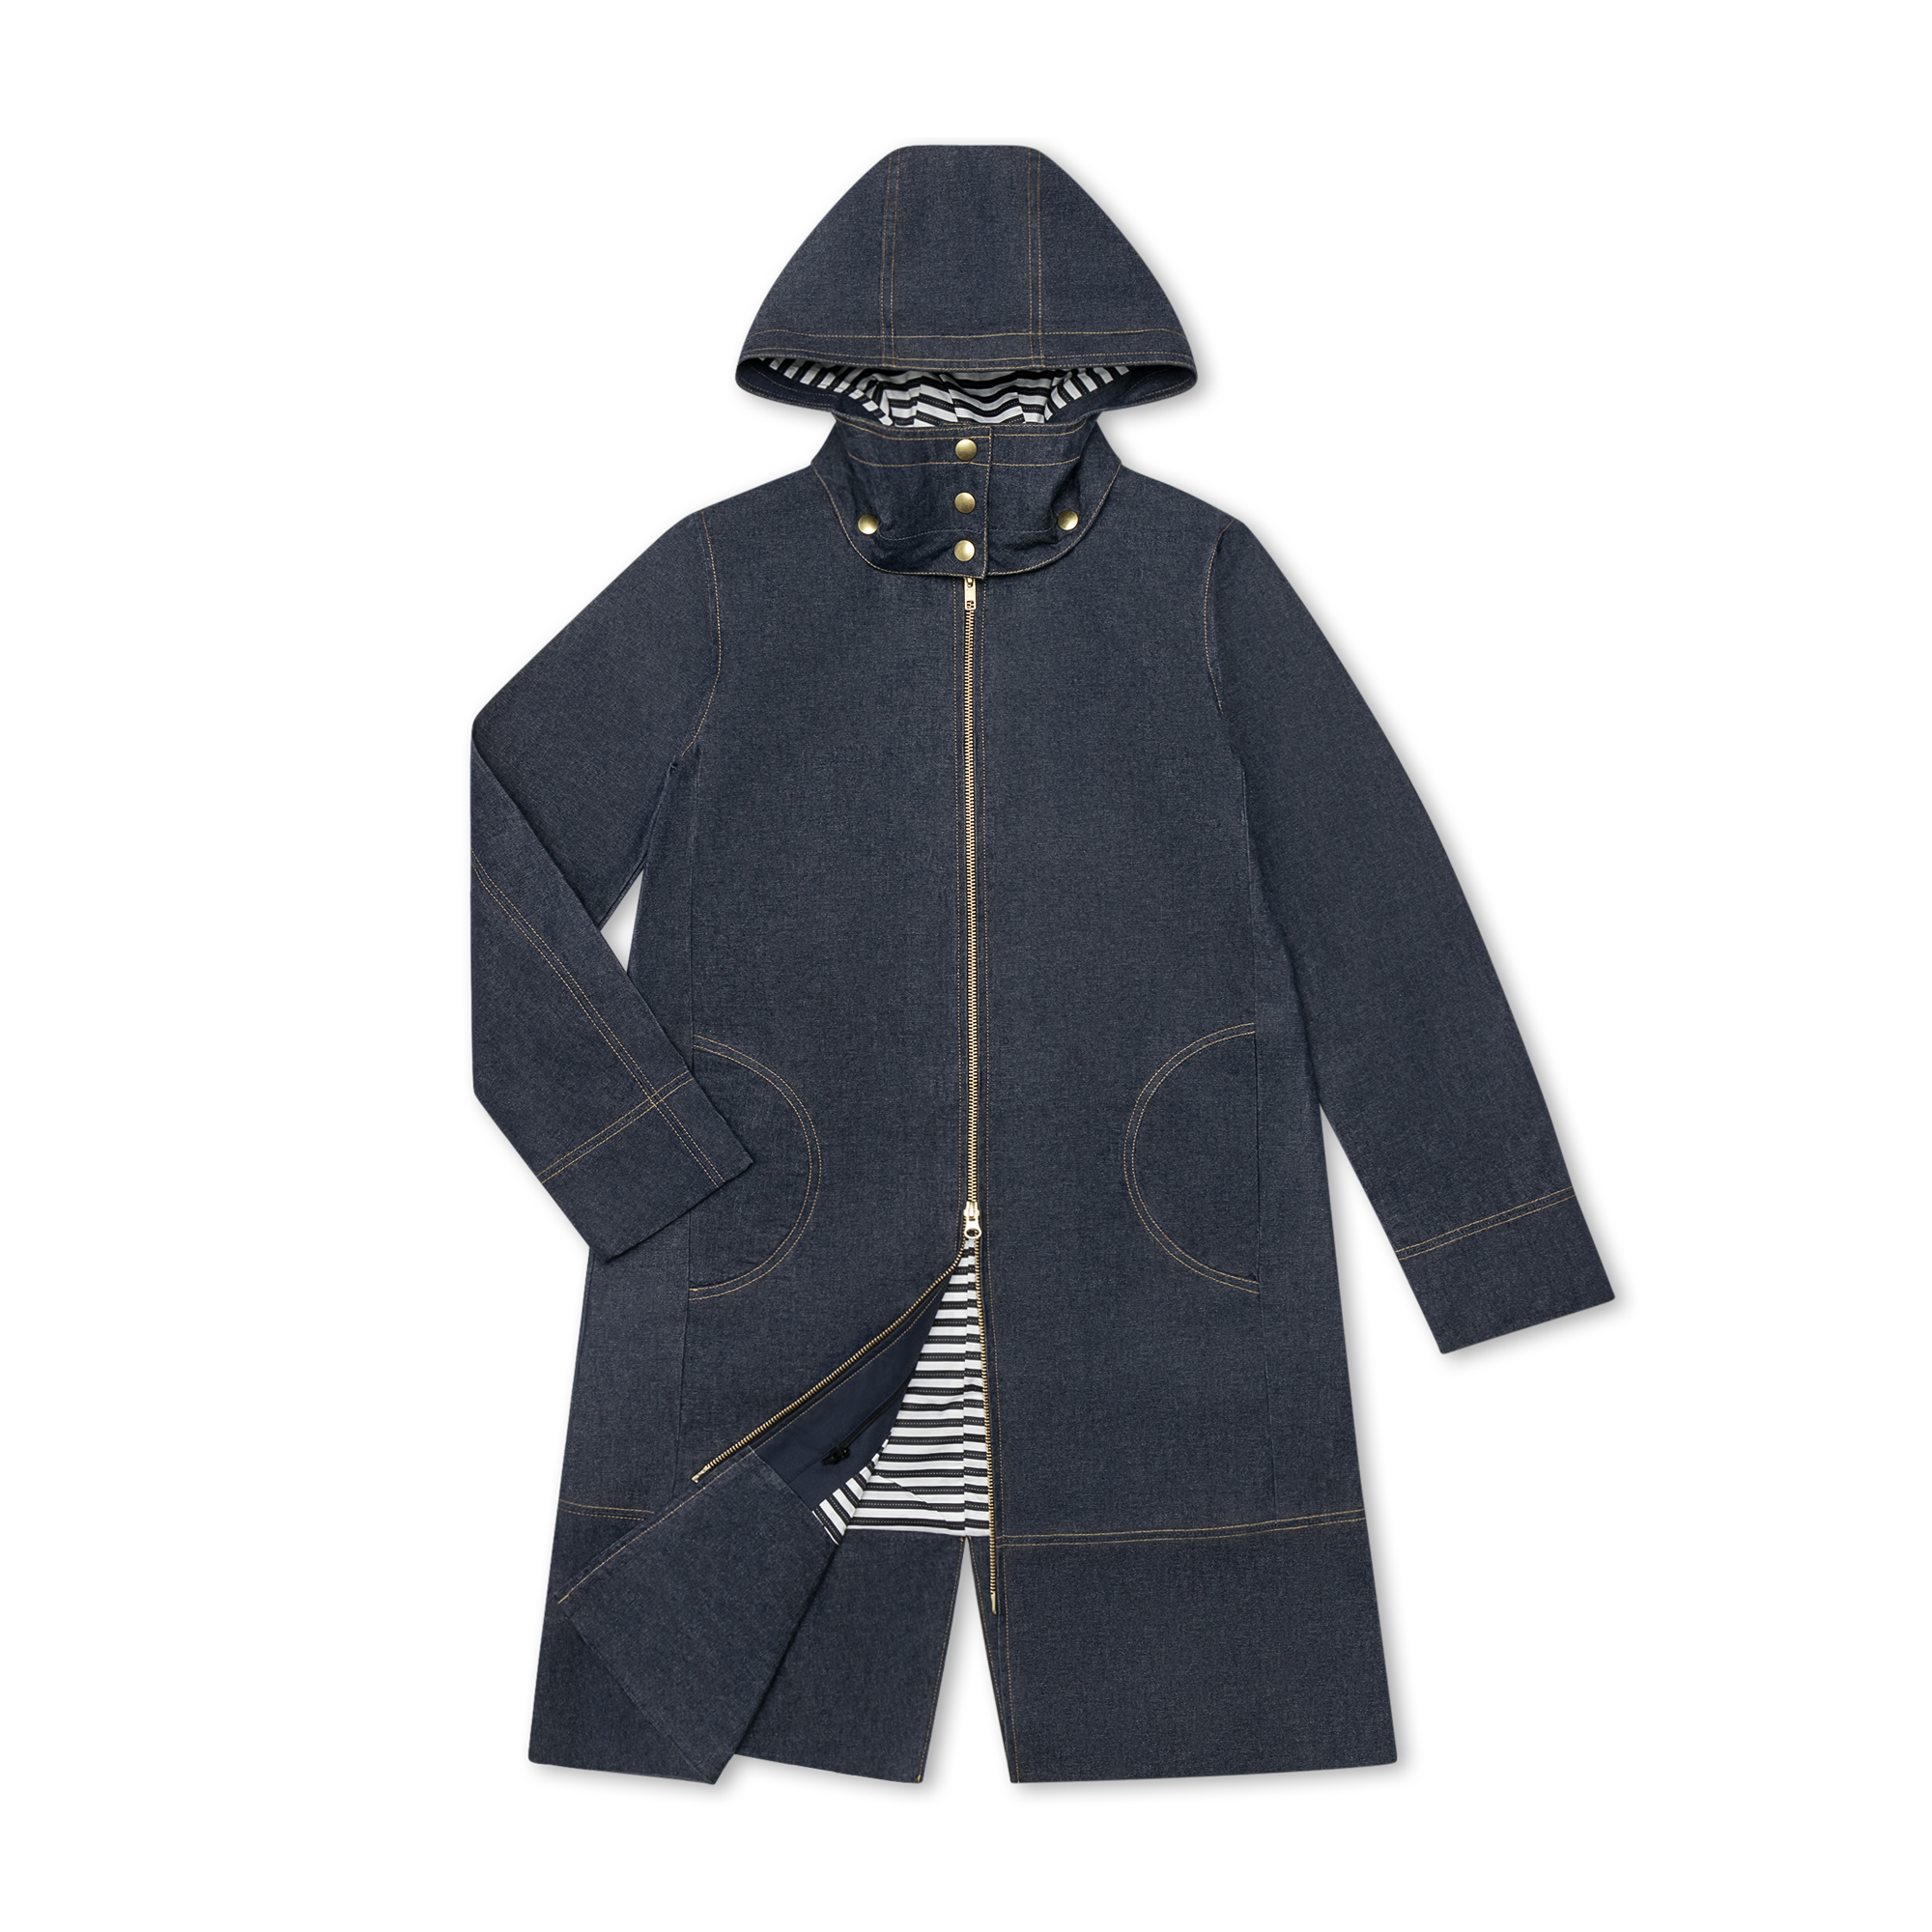 Parka flat lay product photo